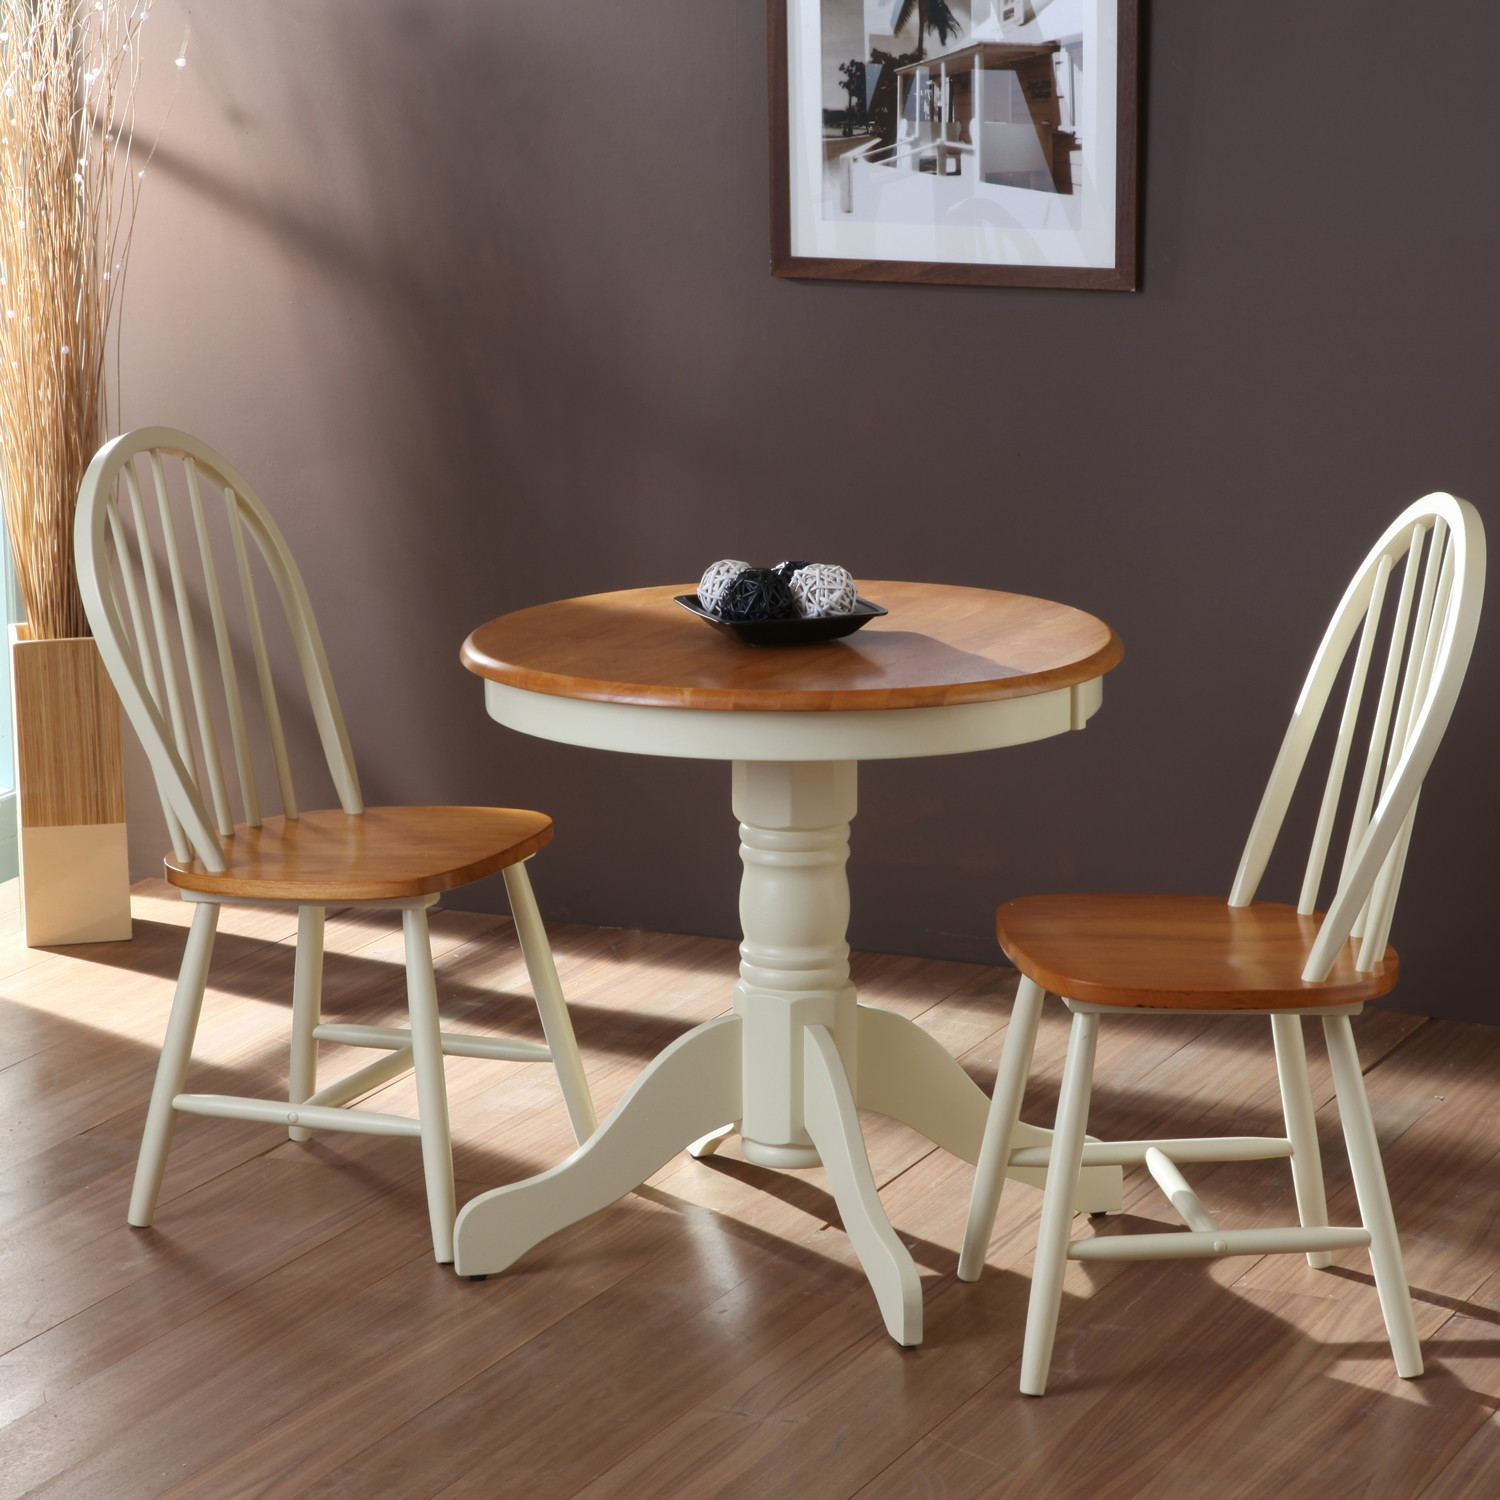 Petite Table De Cuisine Blanche: Beautiful White Round Kitchen Table And Chairs